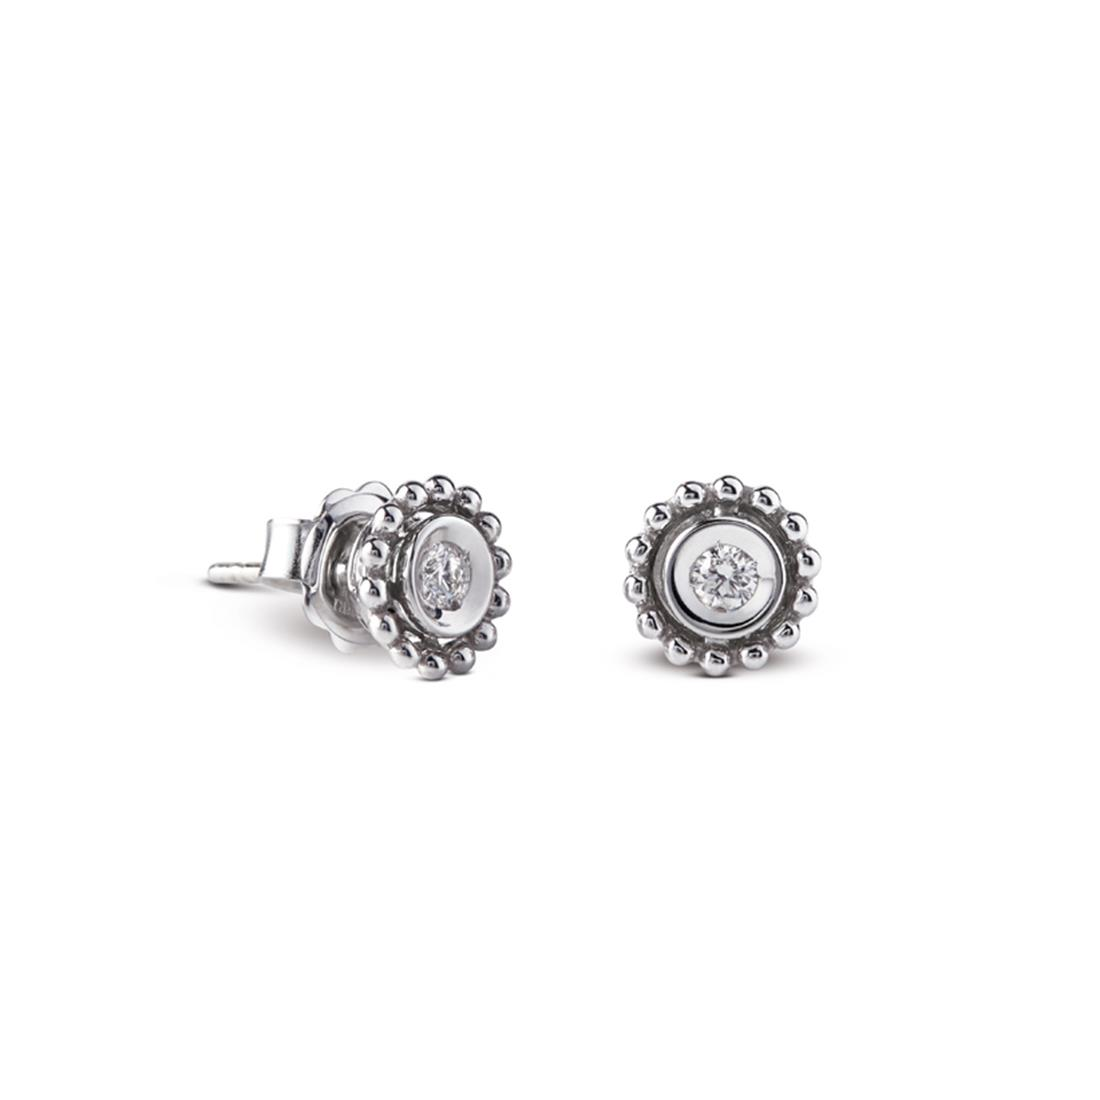 18 kt white gold studs earrings set with 0,14 ct diamonds Available in different weighing in carats.